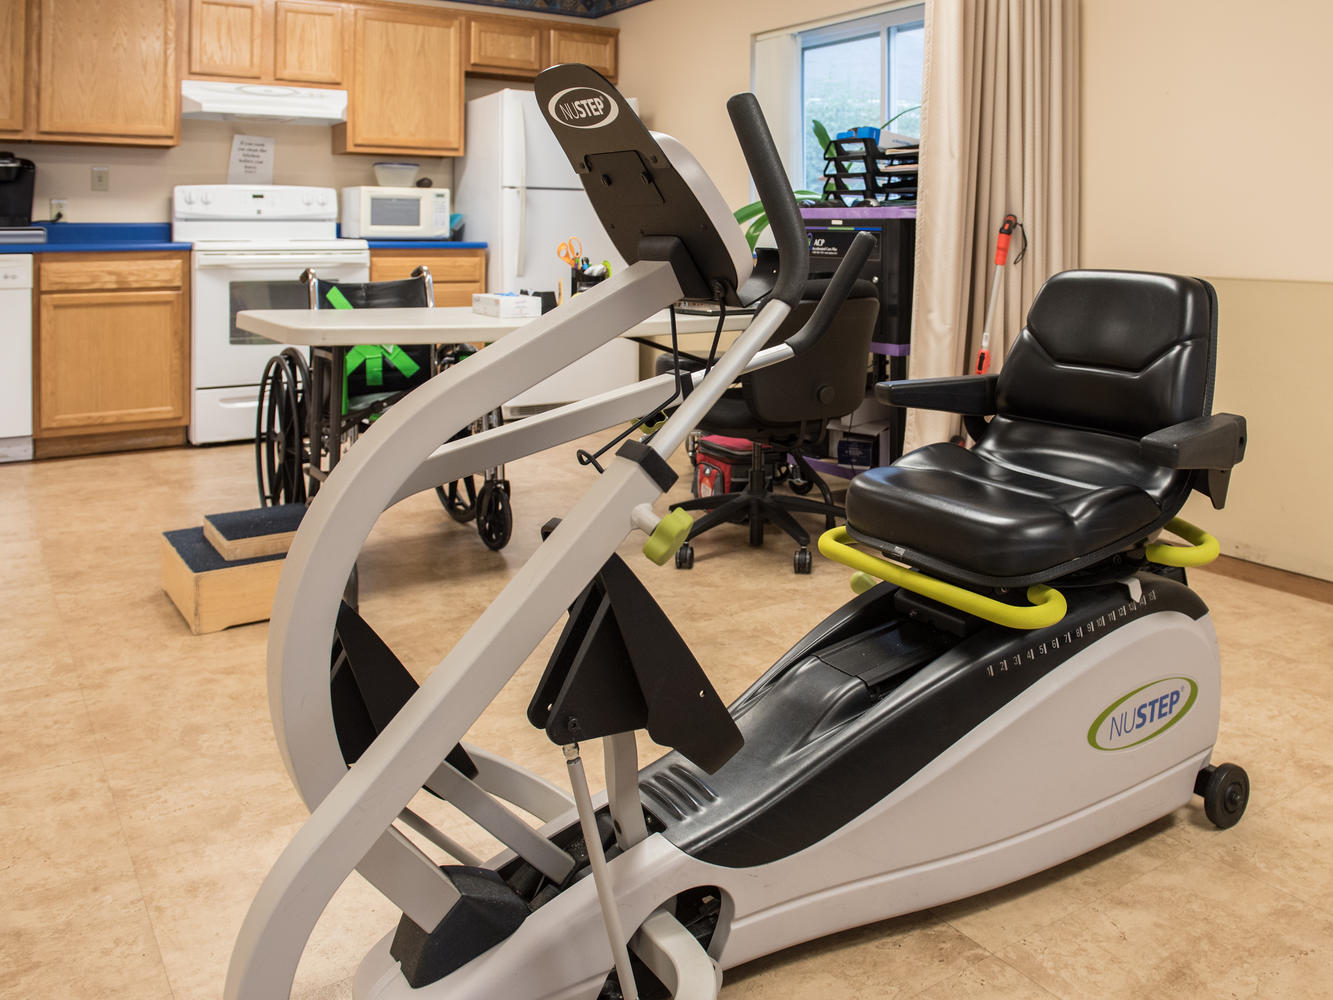 Exercise bike and other equipment in Stonerise Lewisburg Therapy and Rehabilitation room with view of kitchen area